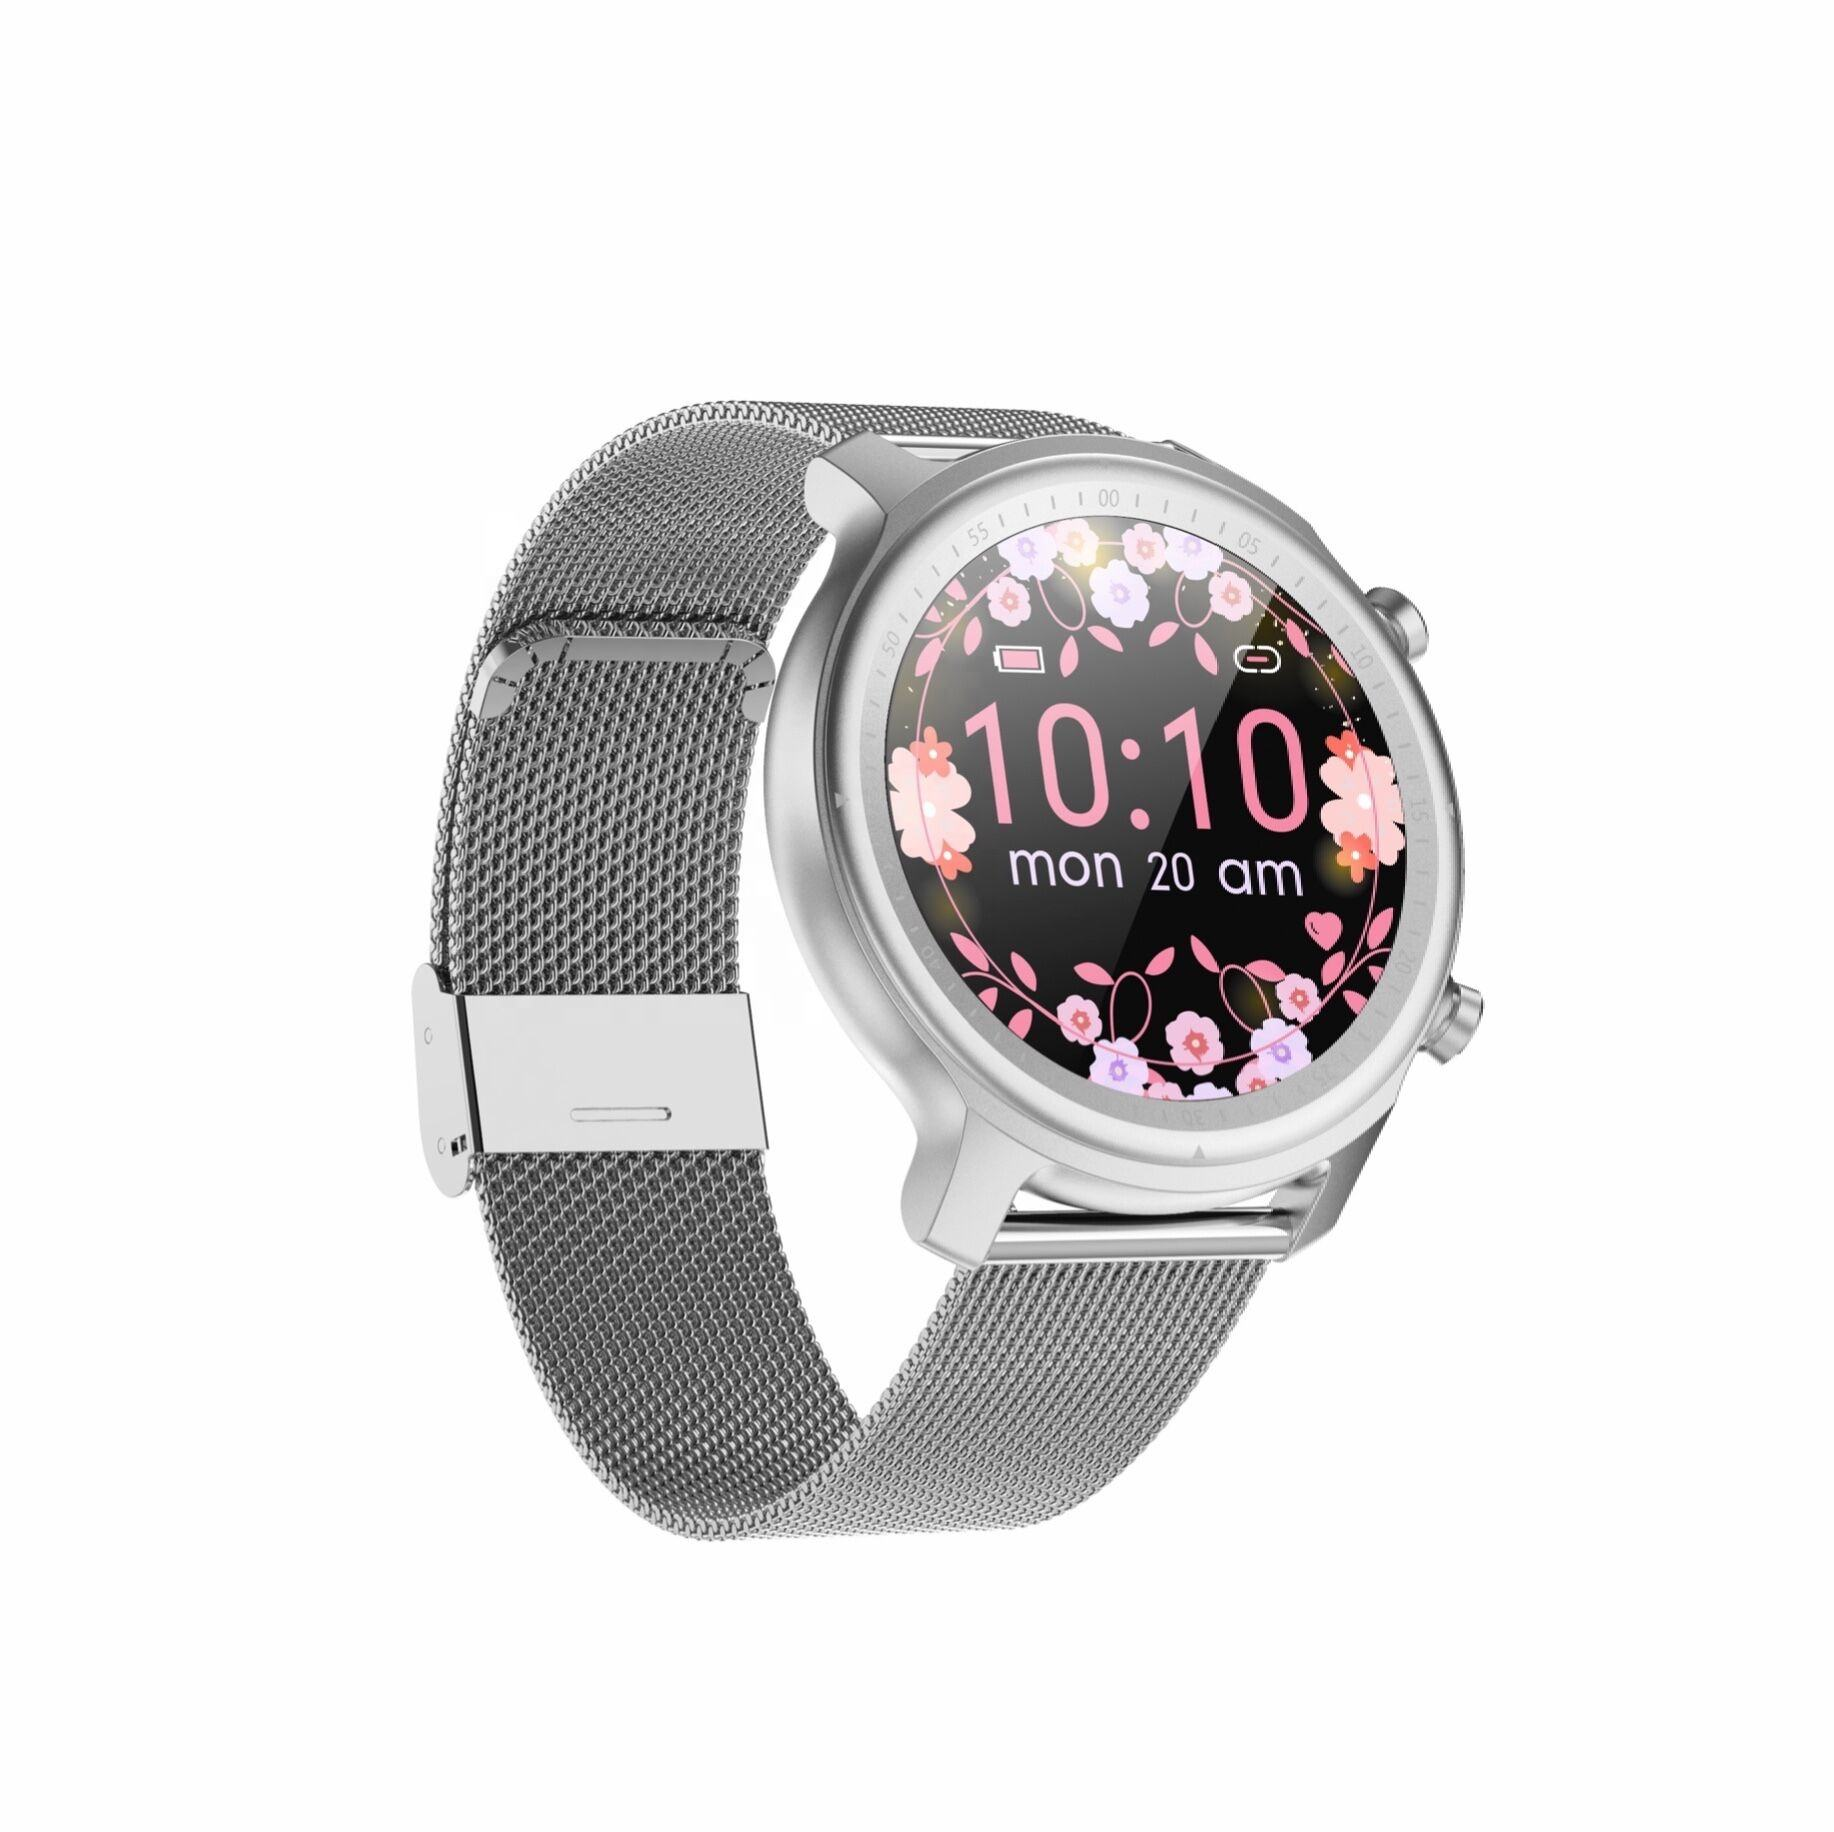 High Performance Round Touch Screen Stainless Steel Mesh Band Android BT Call Smart Watch